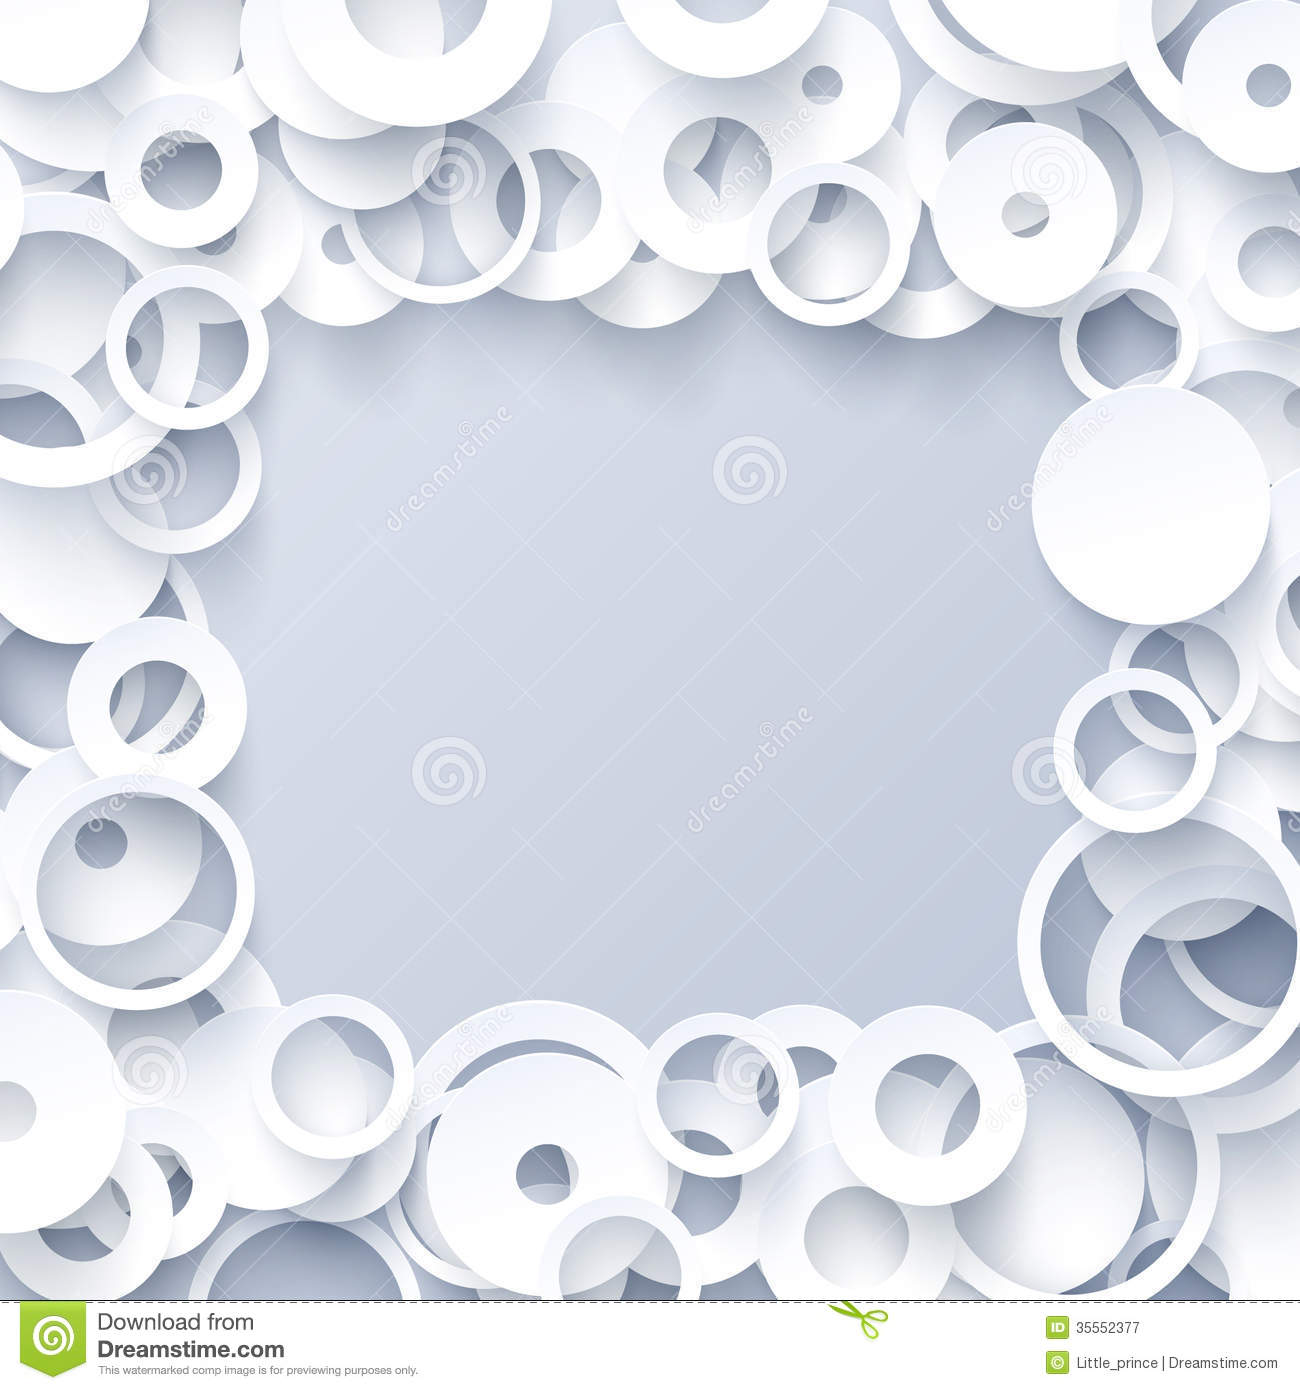 ... Abstract Background Royalty Free Stock Photography - Image: 35552377